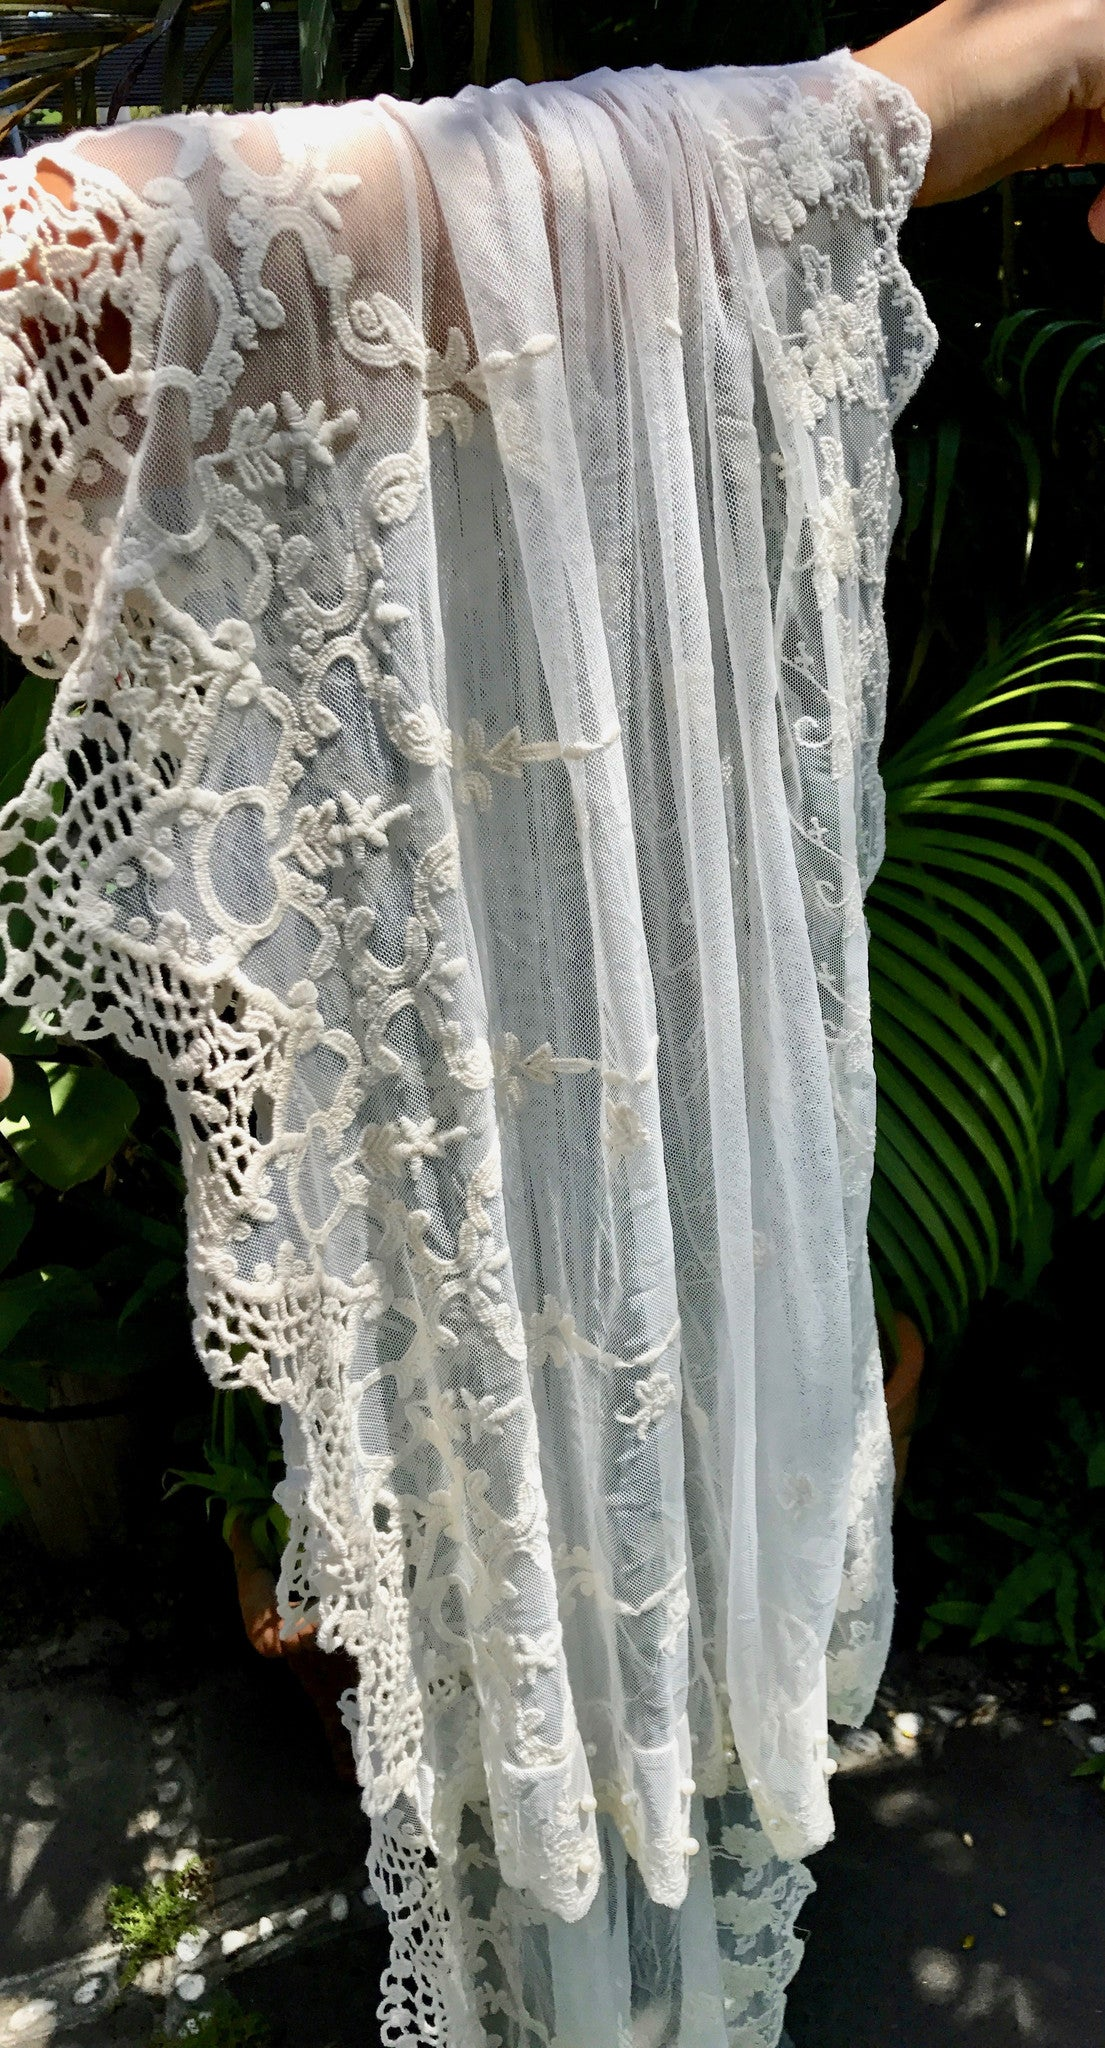 Exquisite Lace Throw